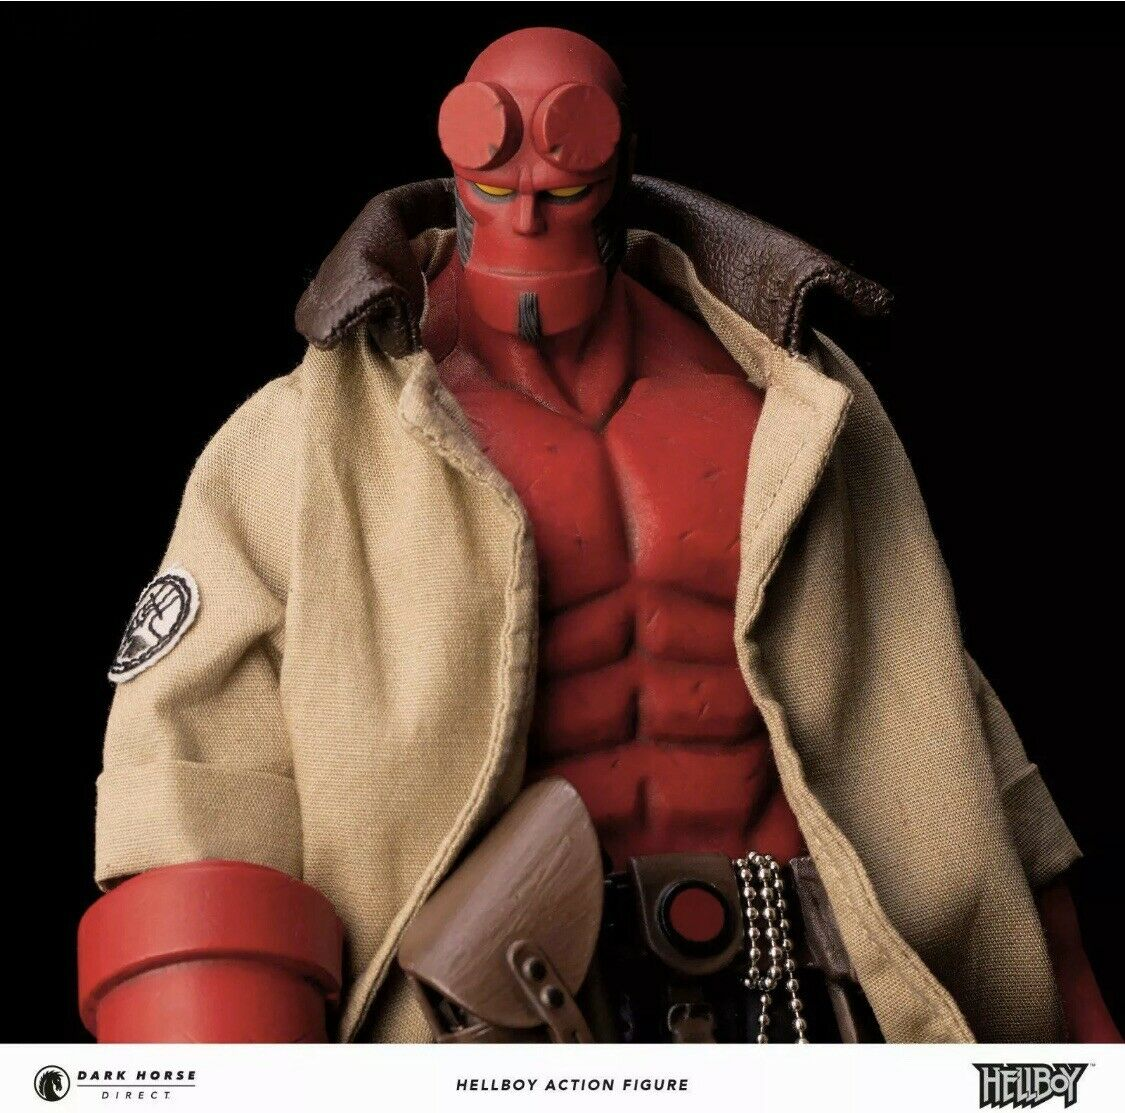 1000toys Dark Horse Direct Exclusive HELLBOY 1 12 Scale Action Figure